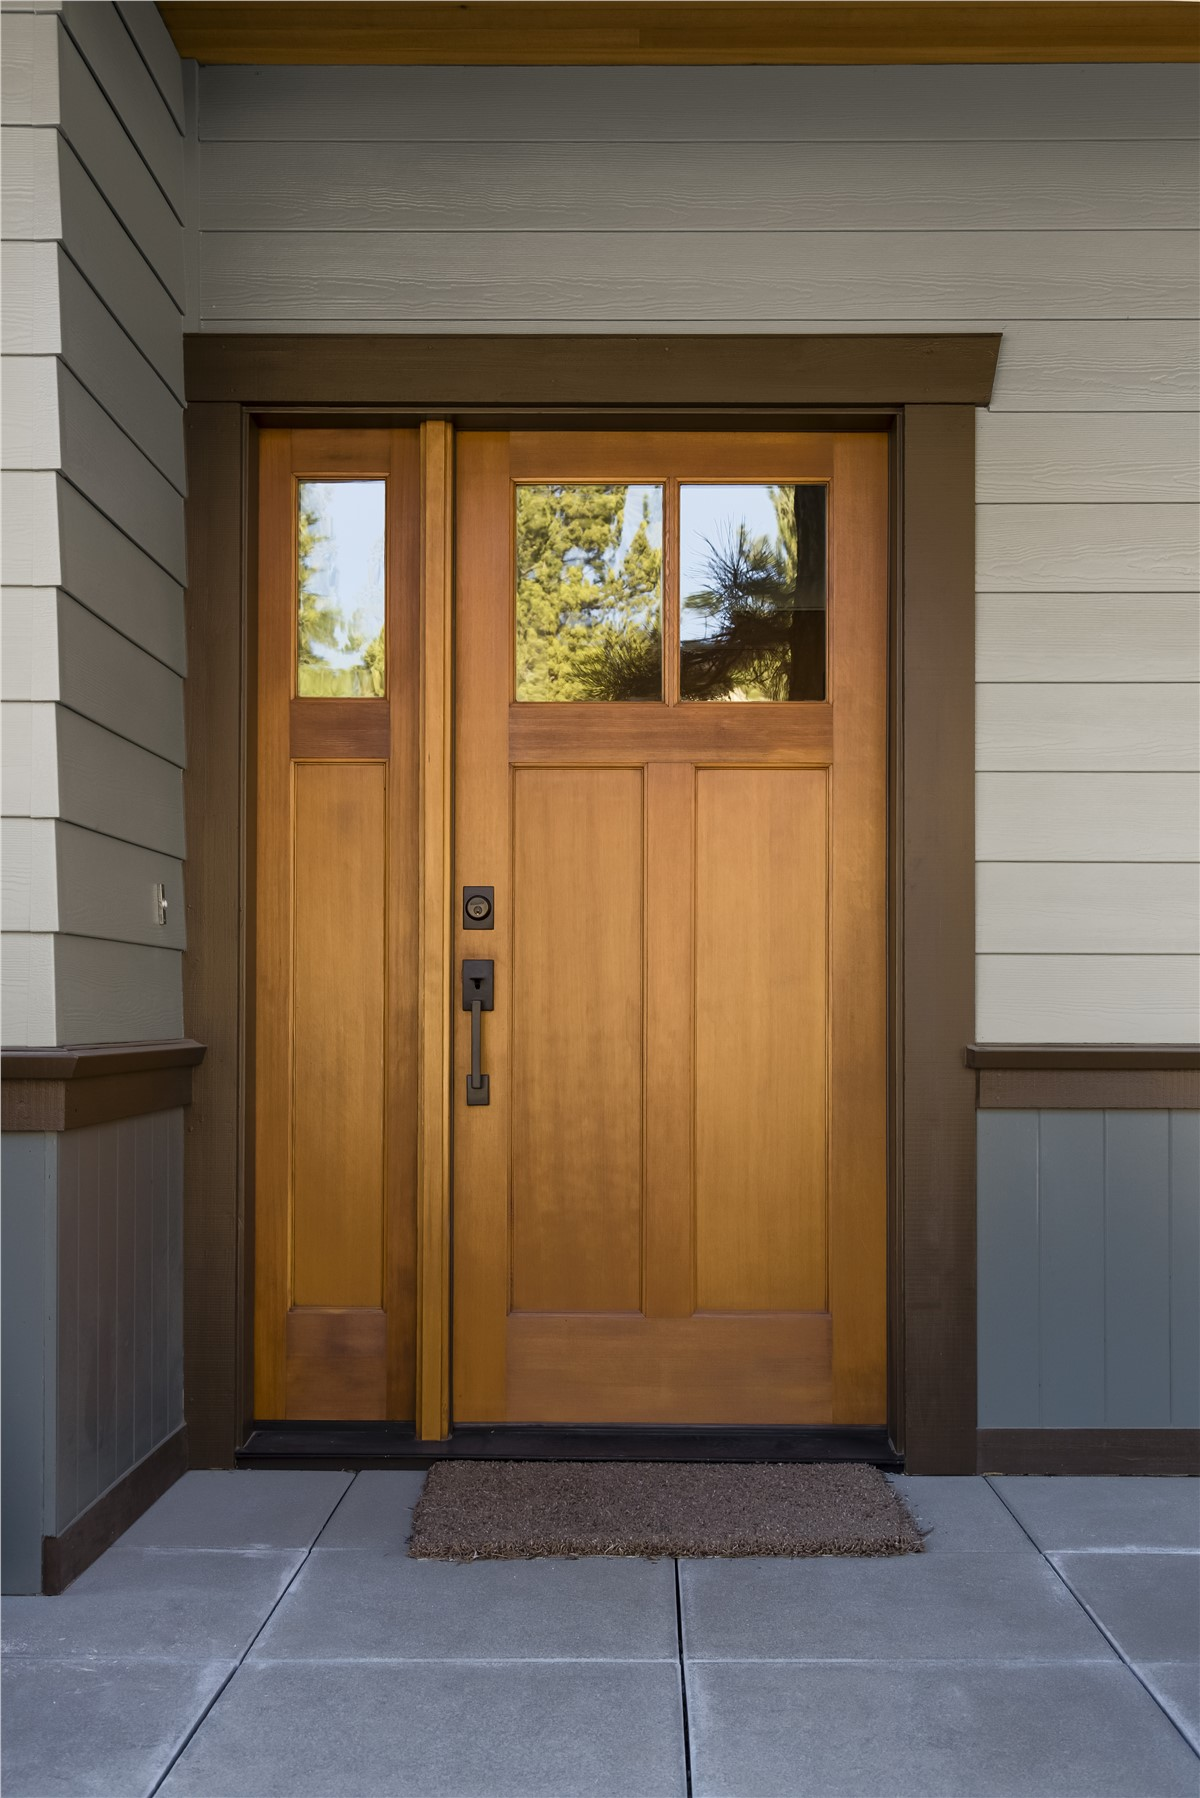 Fiberglass entry doors chicago fiberglass door chicago for Residential entry doors